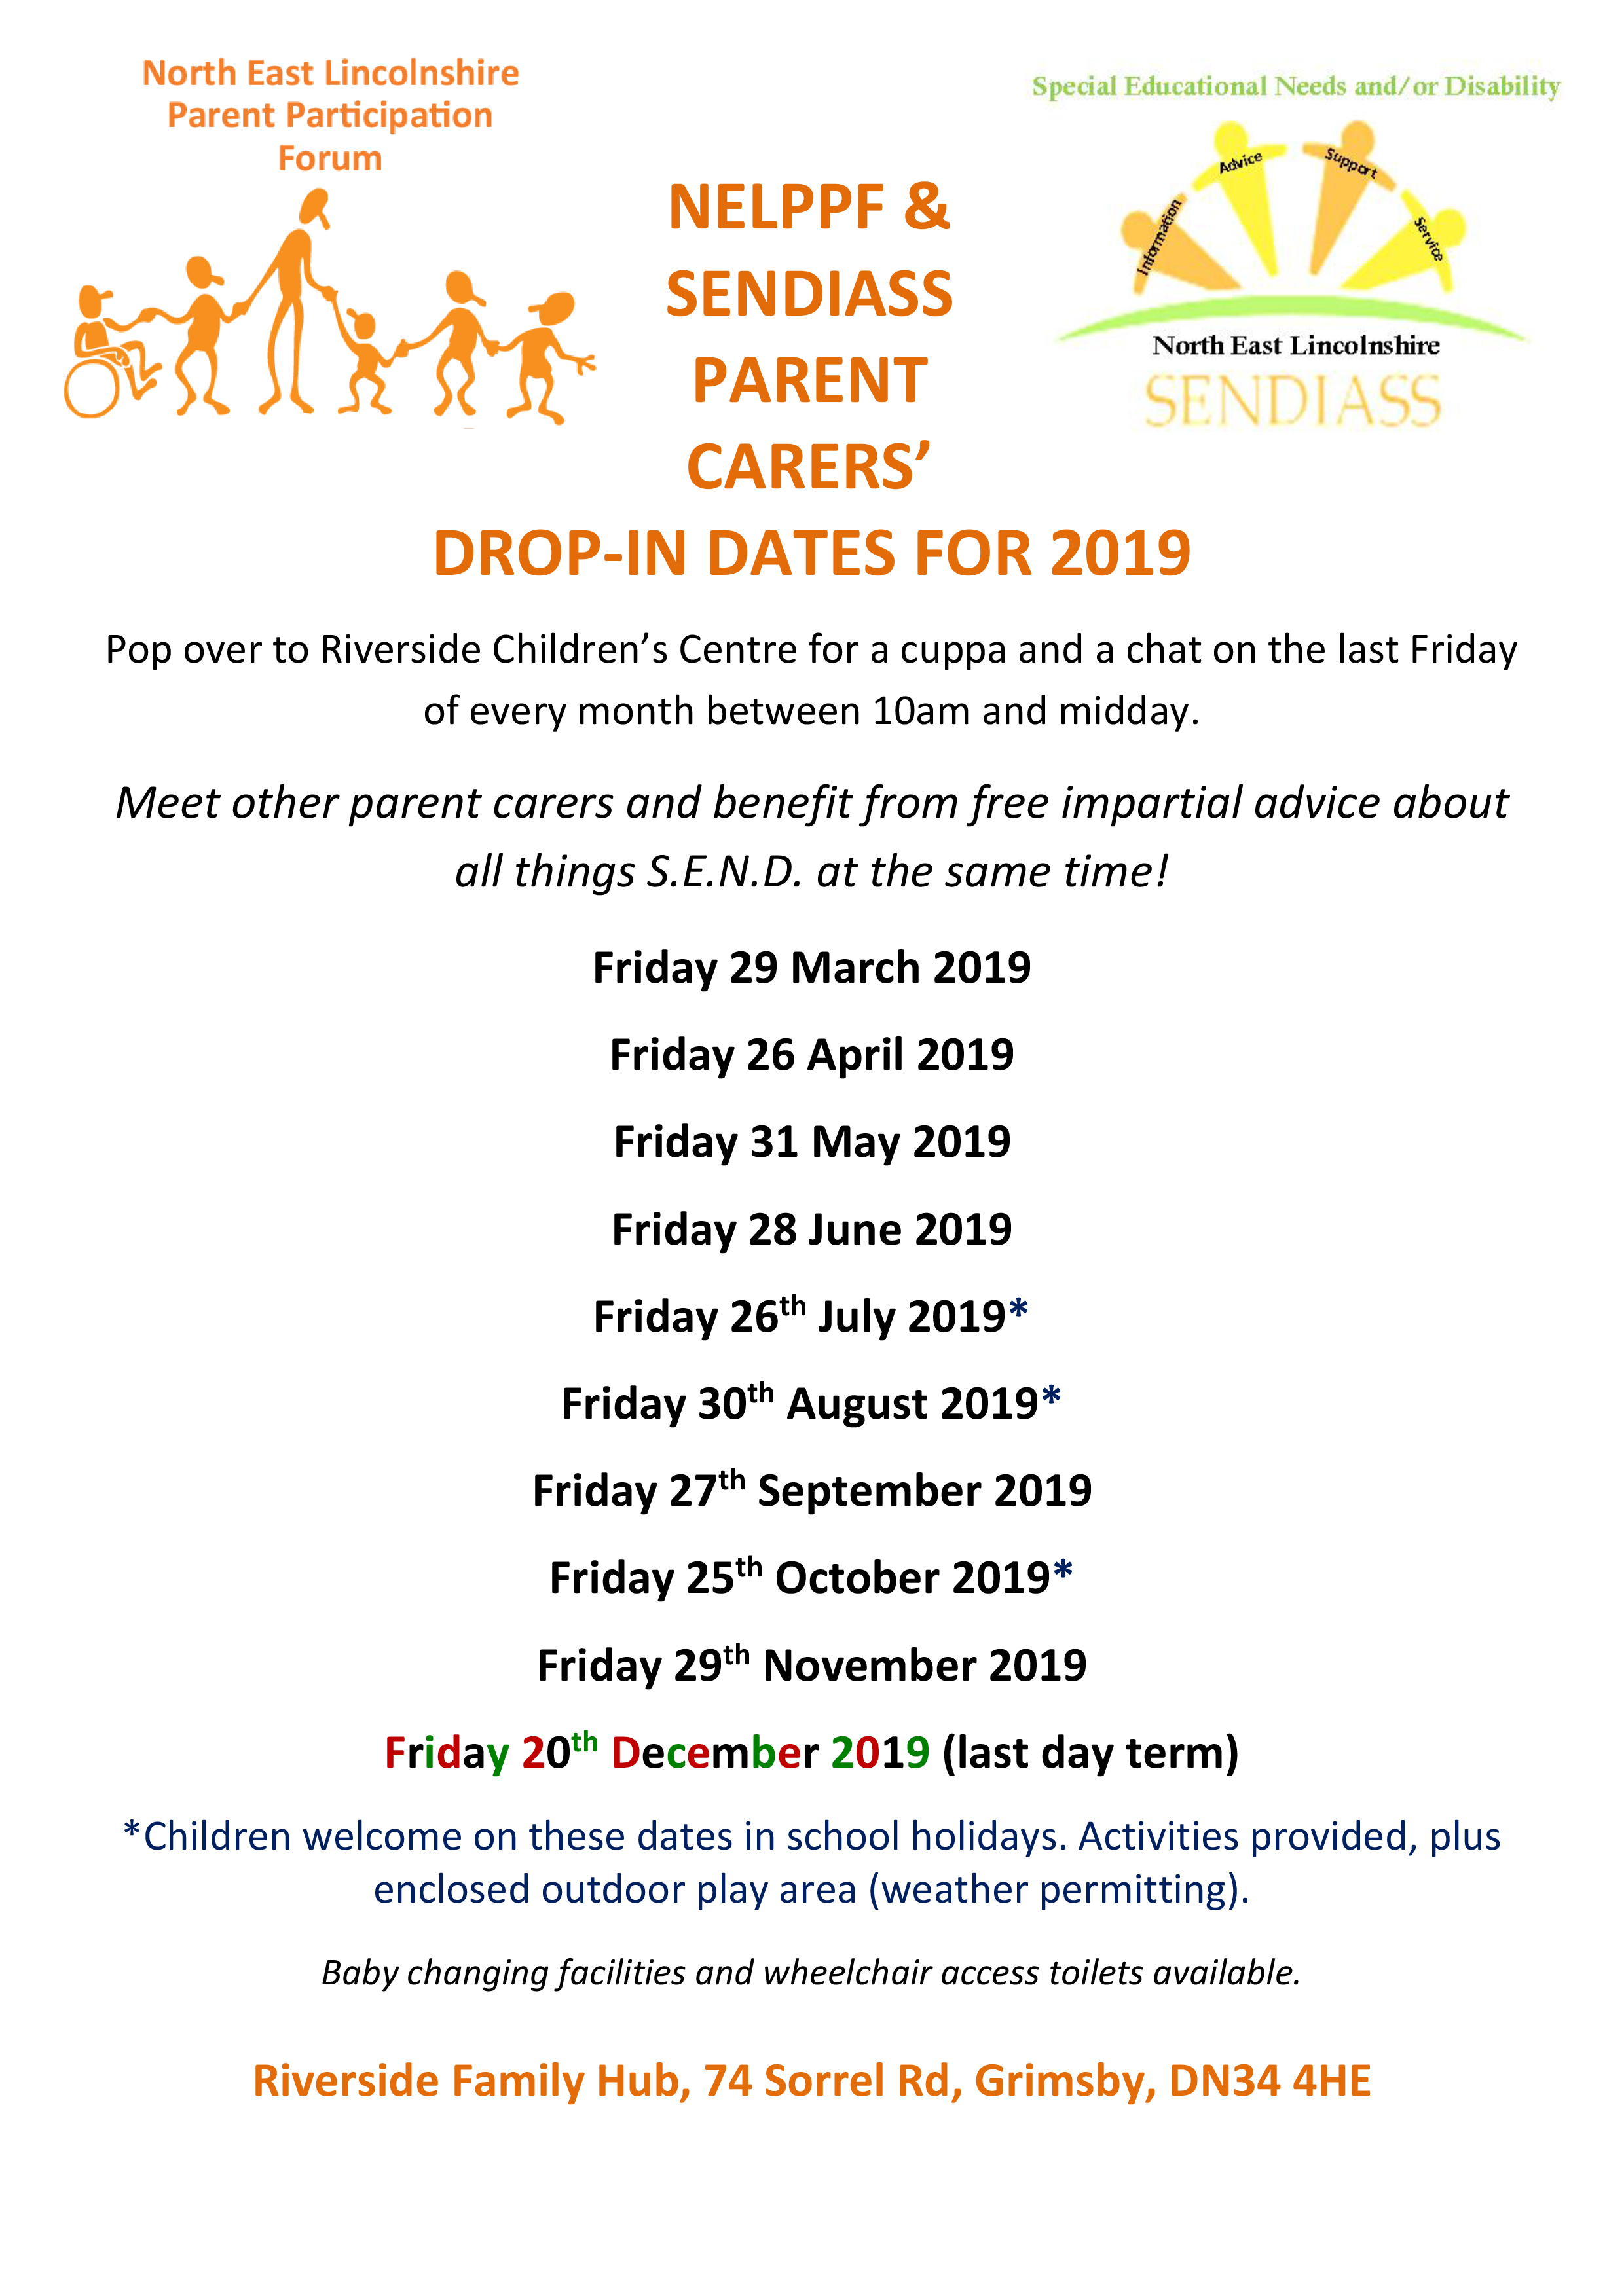 Meet other parent carers and benefit from free impartial advice about all things S.E.N.D. at the same time!